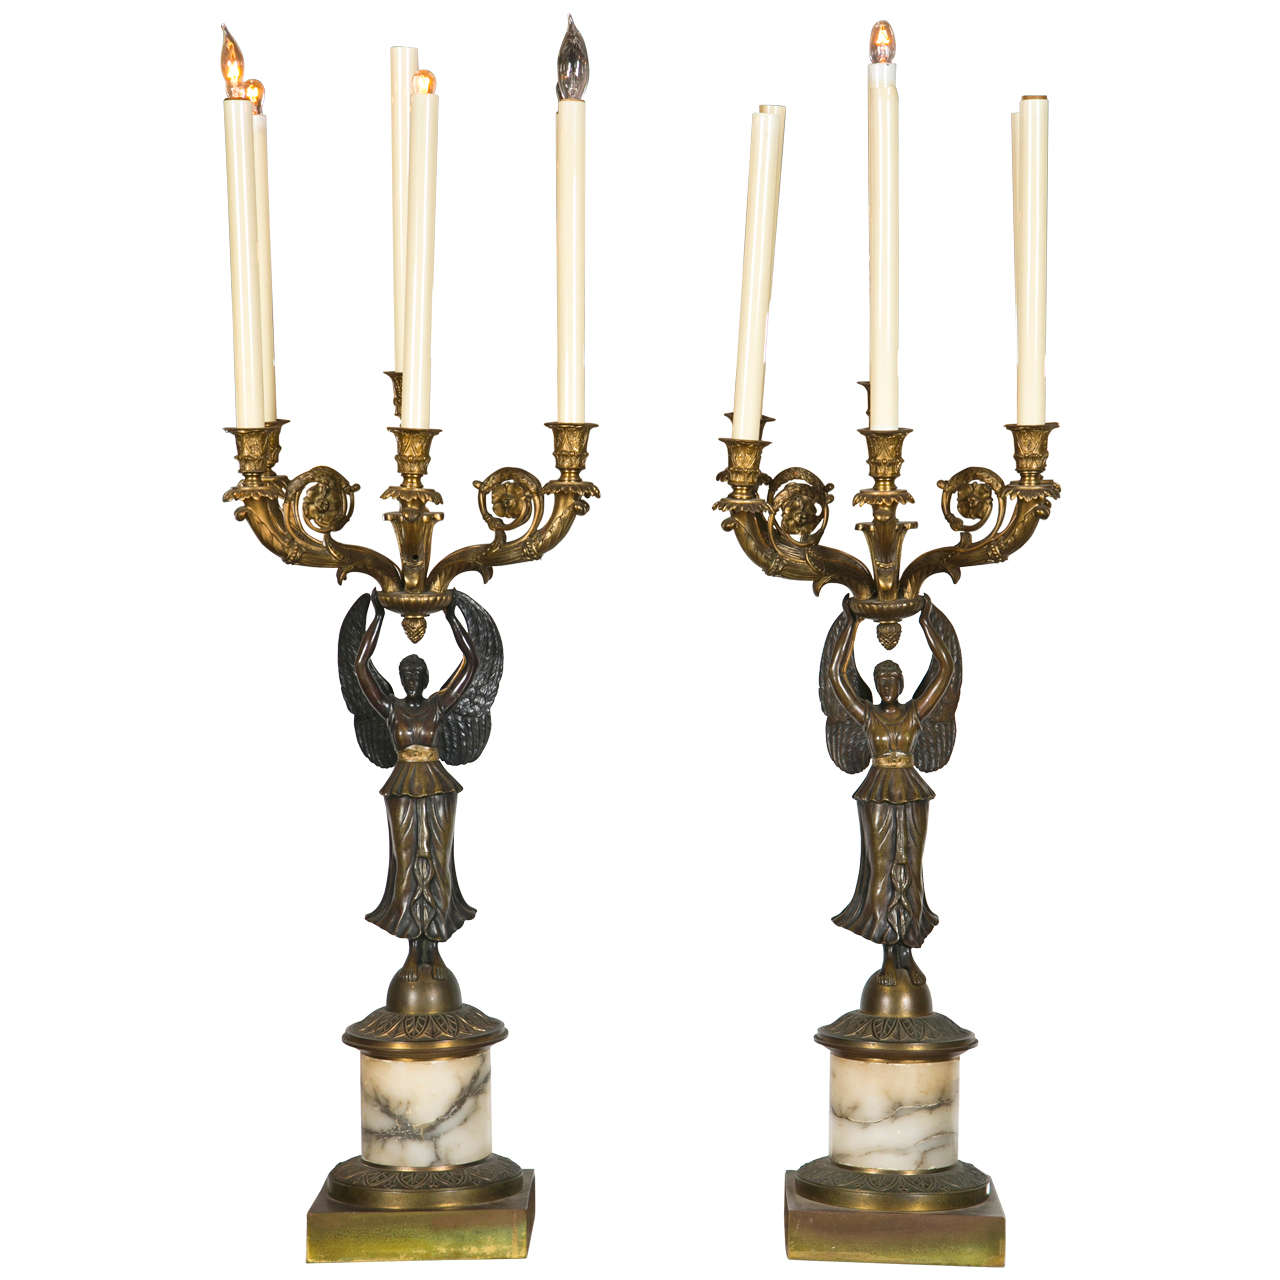 Pair of Neoclassical Style Bronze Candelabras